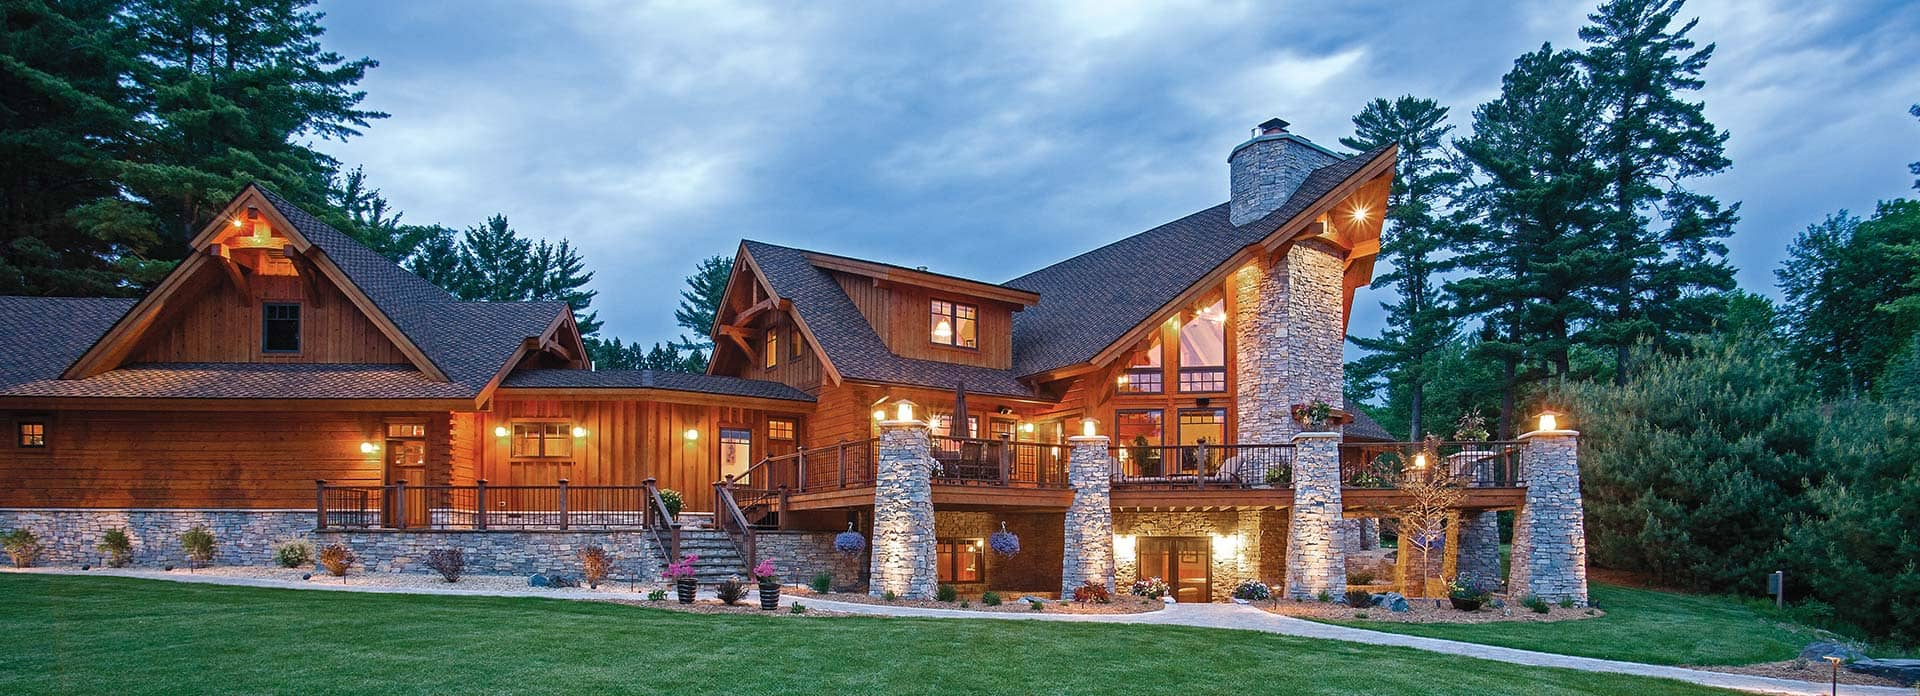 Hybrid Log Amp Timber Frame Homes Precisioncraft